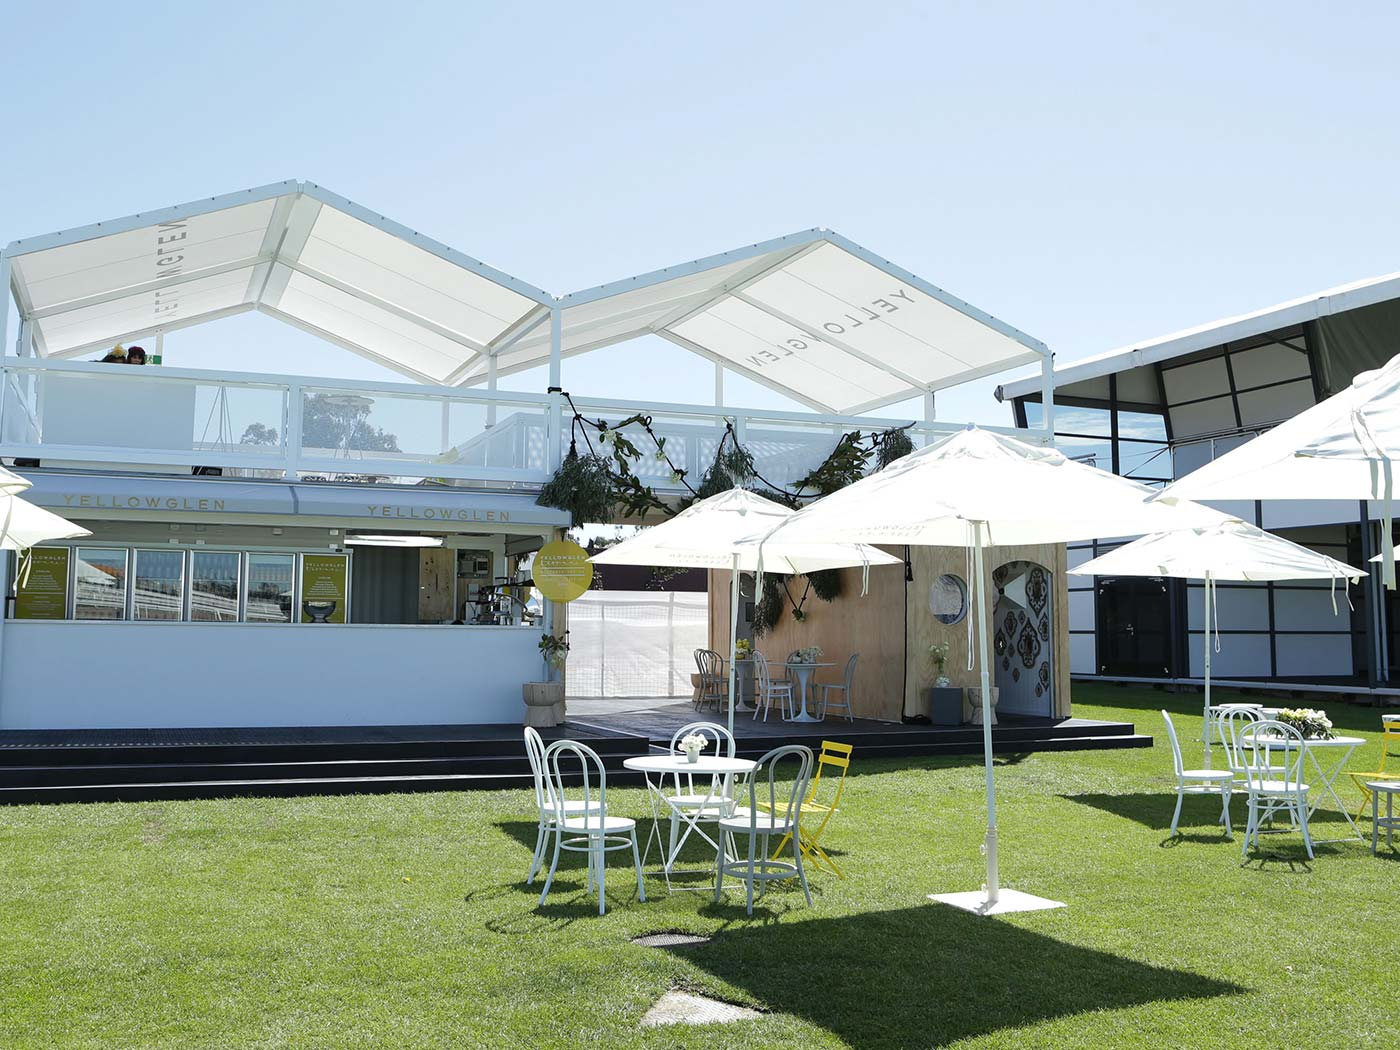 Yellowglen-Terrace-Shipping-Container-Hospitality-Activation-8